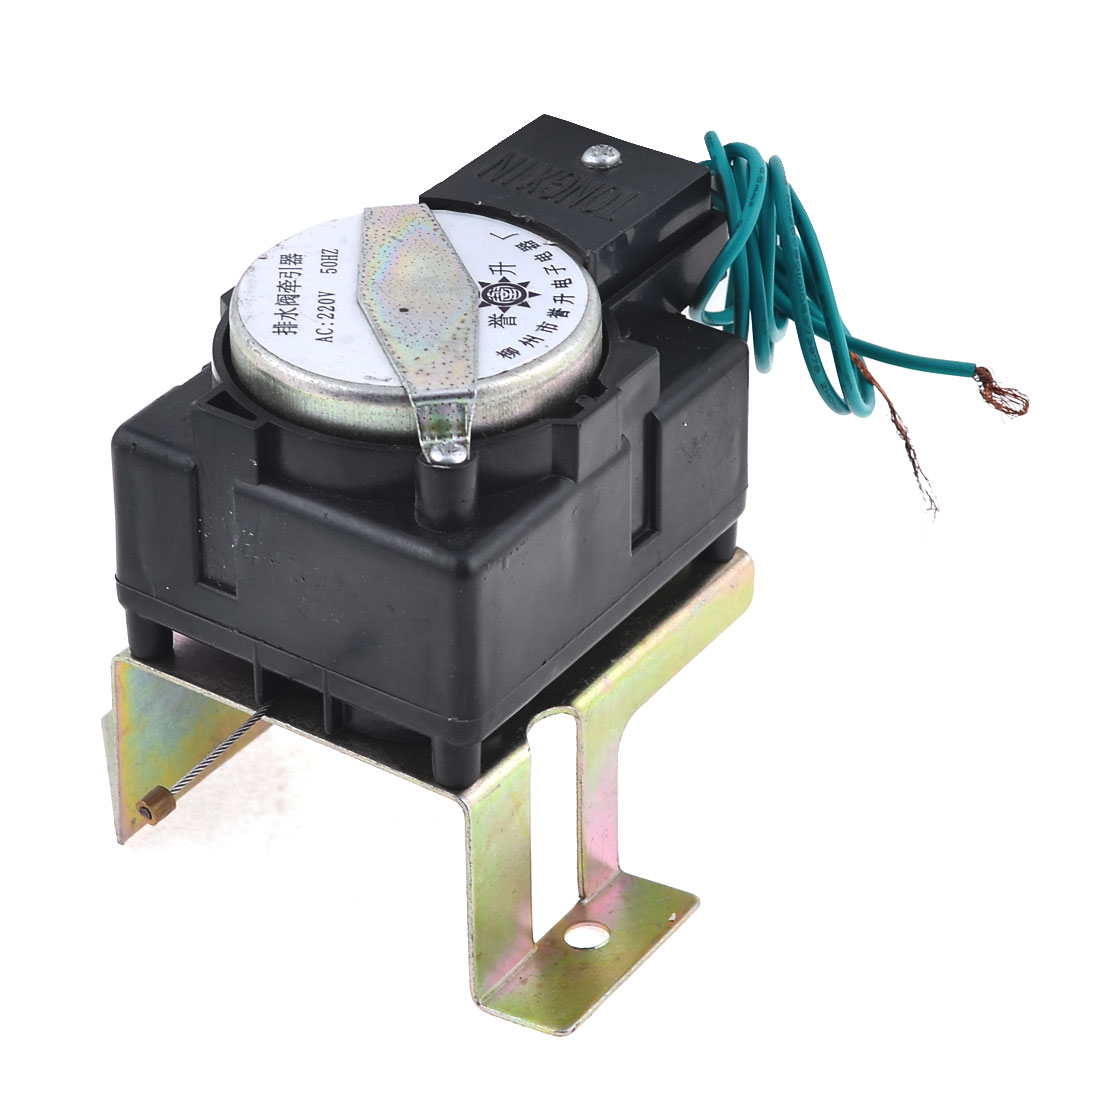 Replacing AC 220V 50Hz Plastic Shell Drain Valve Tractor for Haier Washer